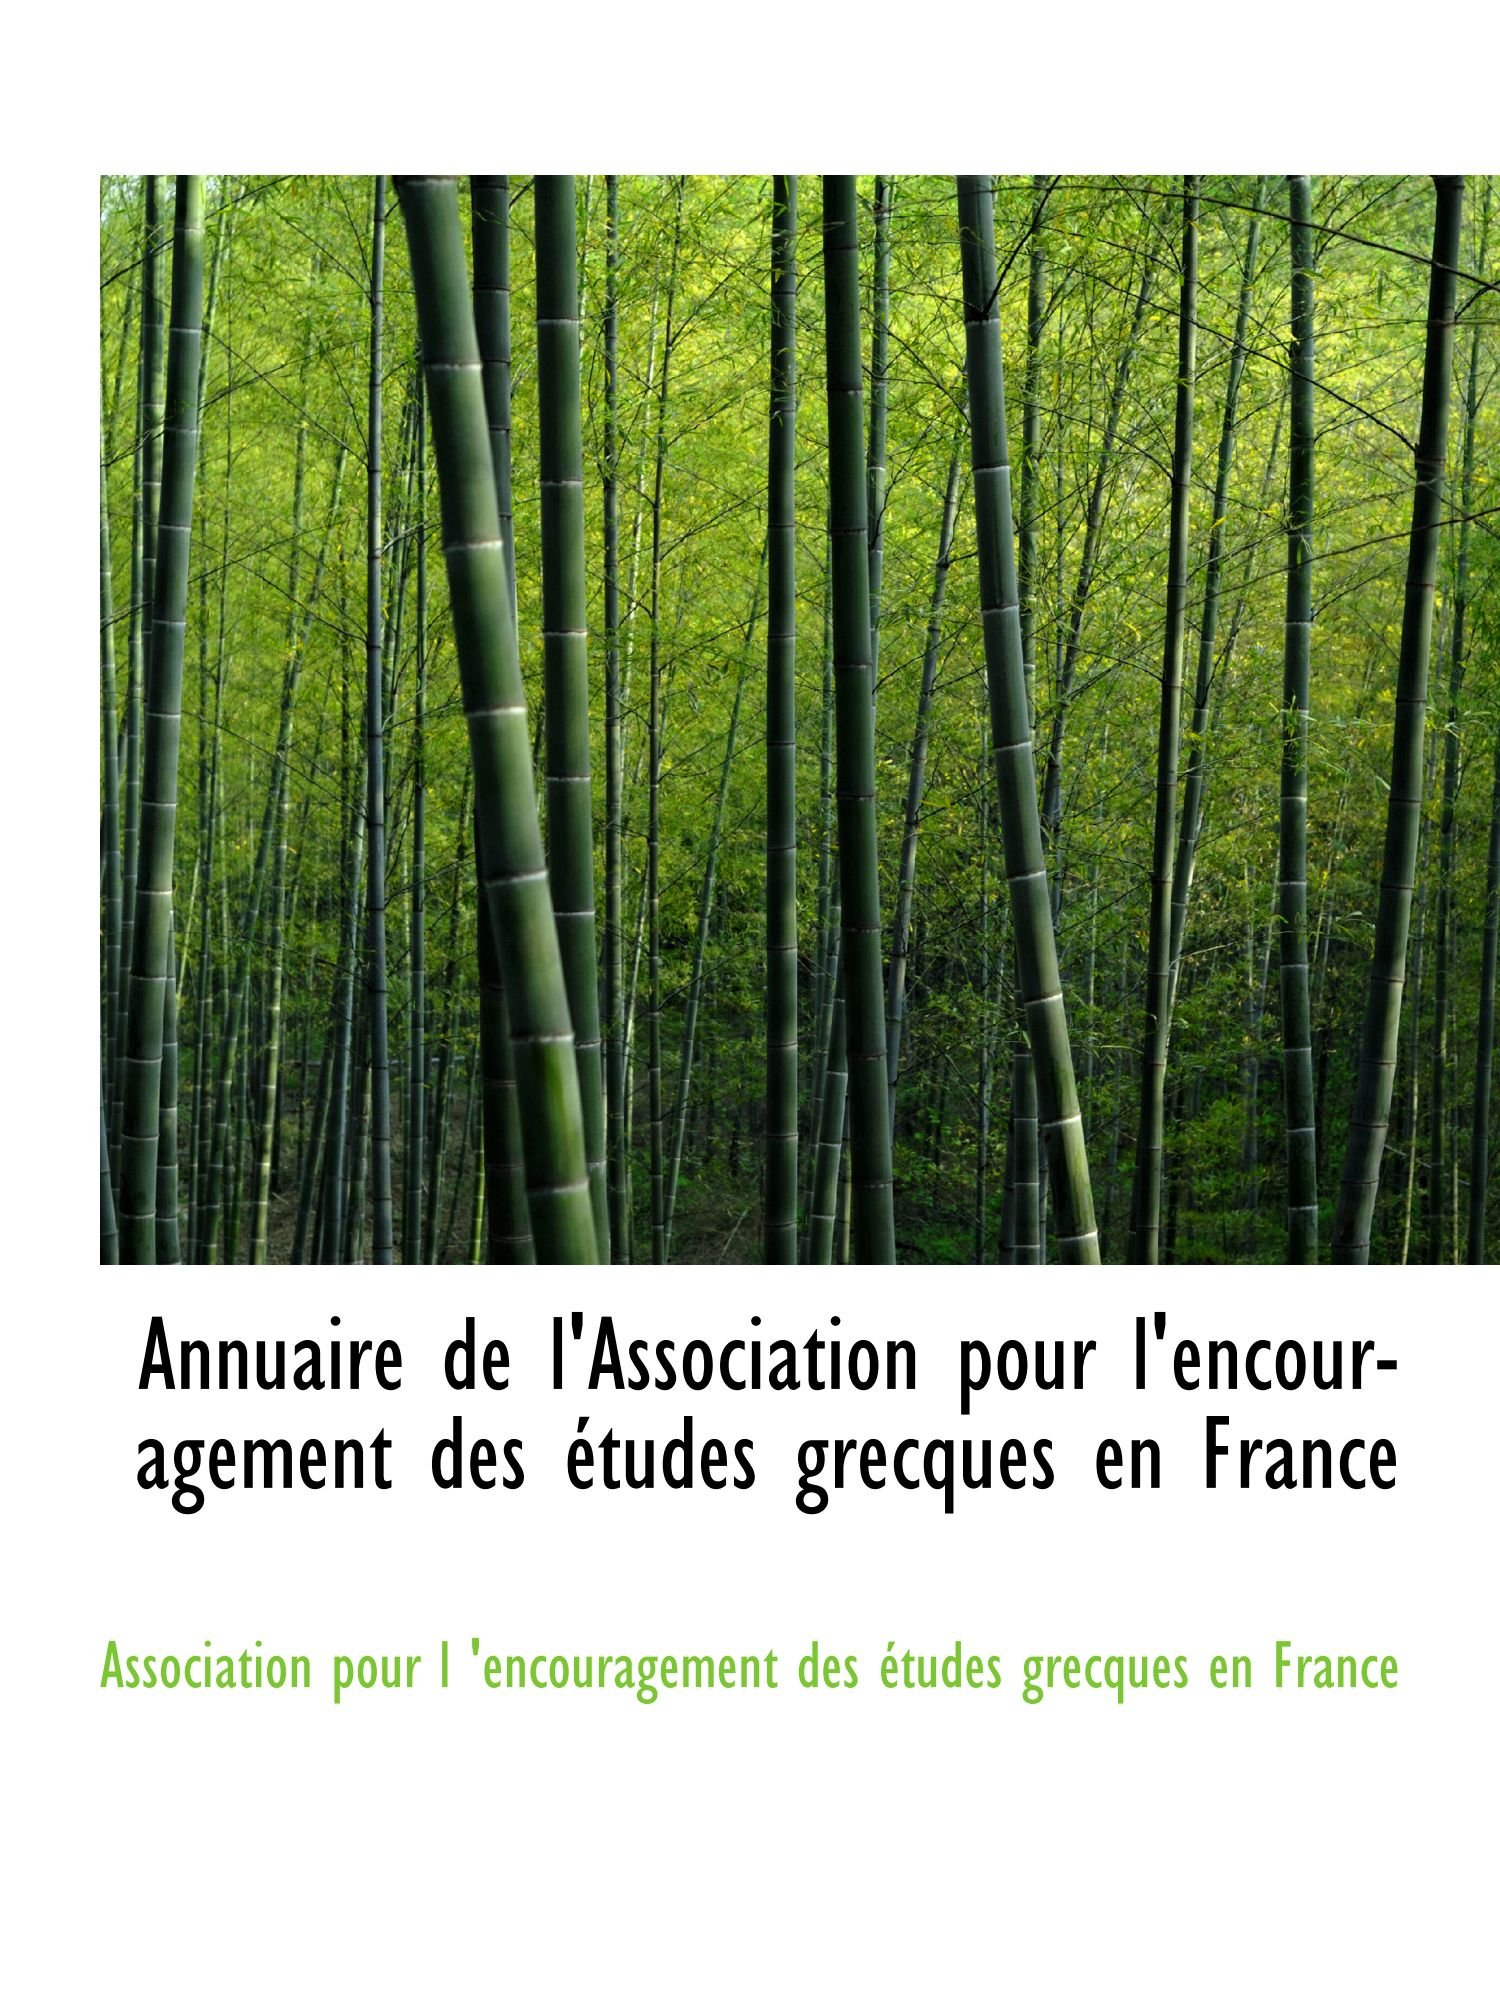 Download Annuaire de l'Association pour l'encouragement des études grecques en France (French Edition) ebook